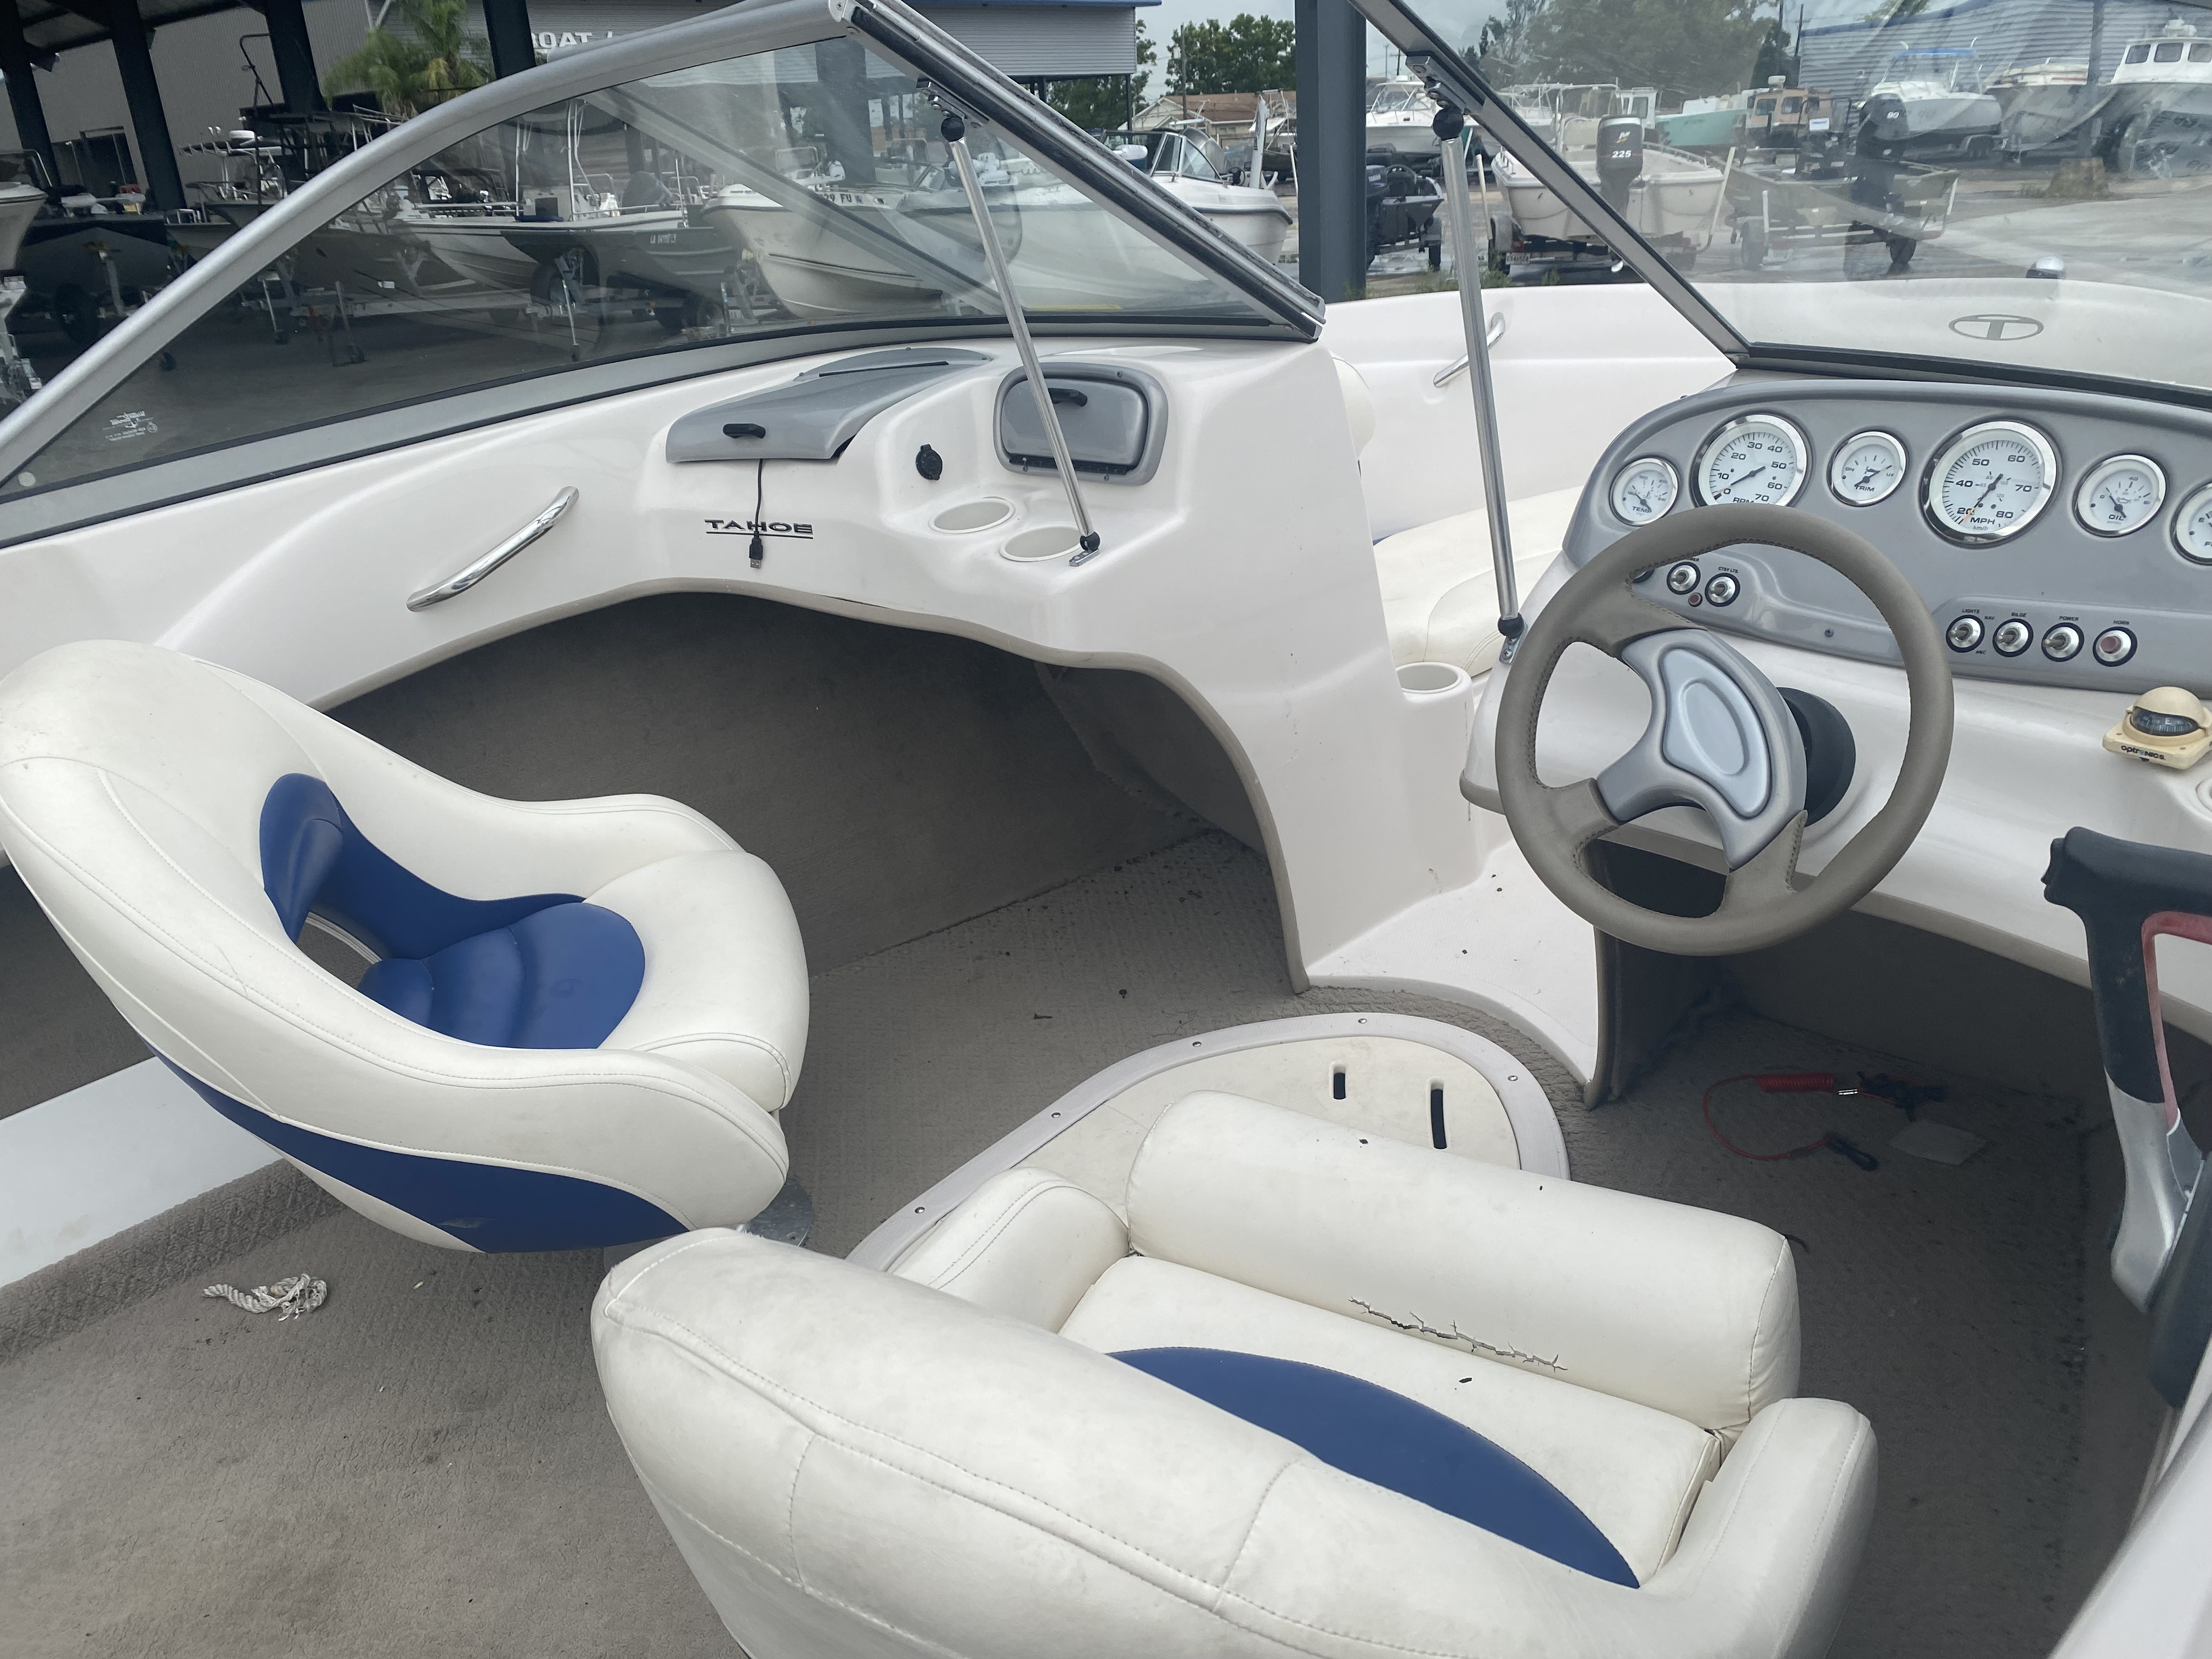 2008 Tahoe boat for sale, model of the boat is Q6 & Image # 9 of 10